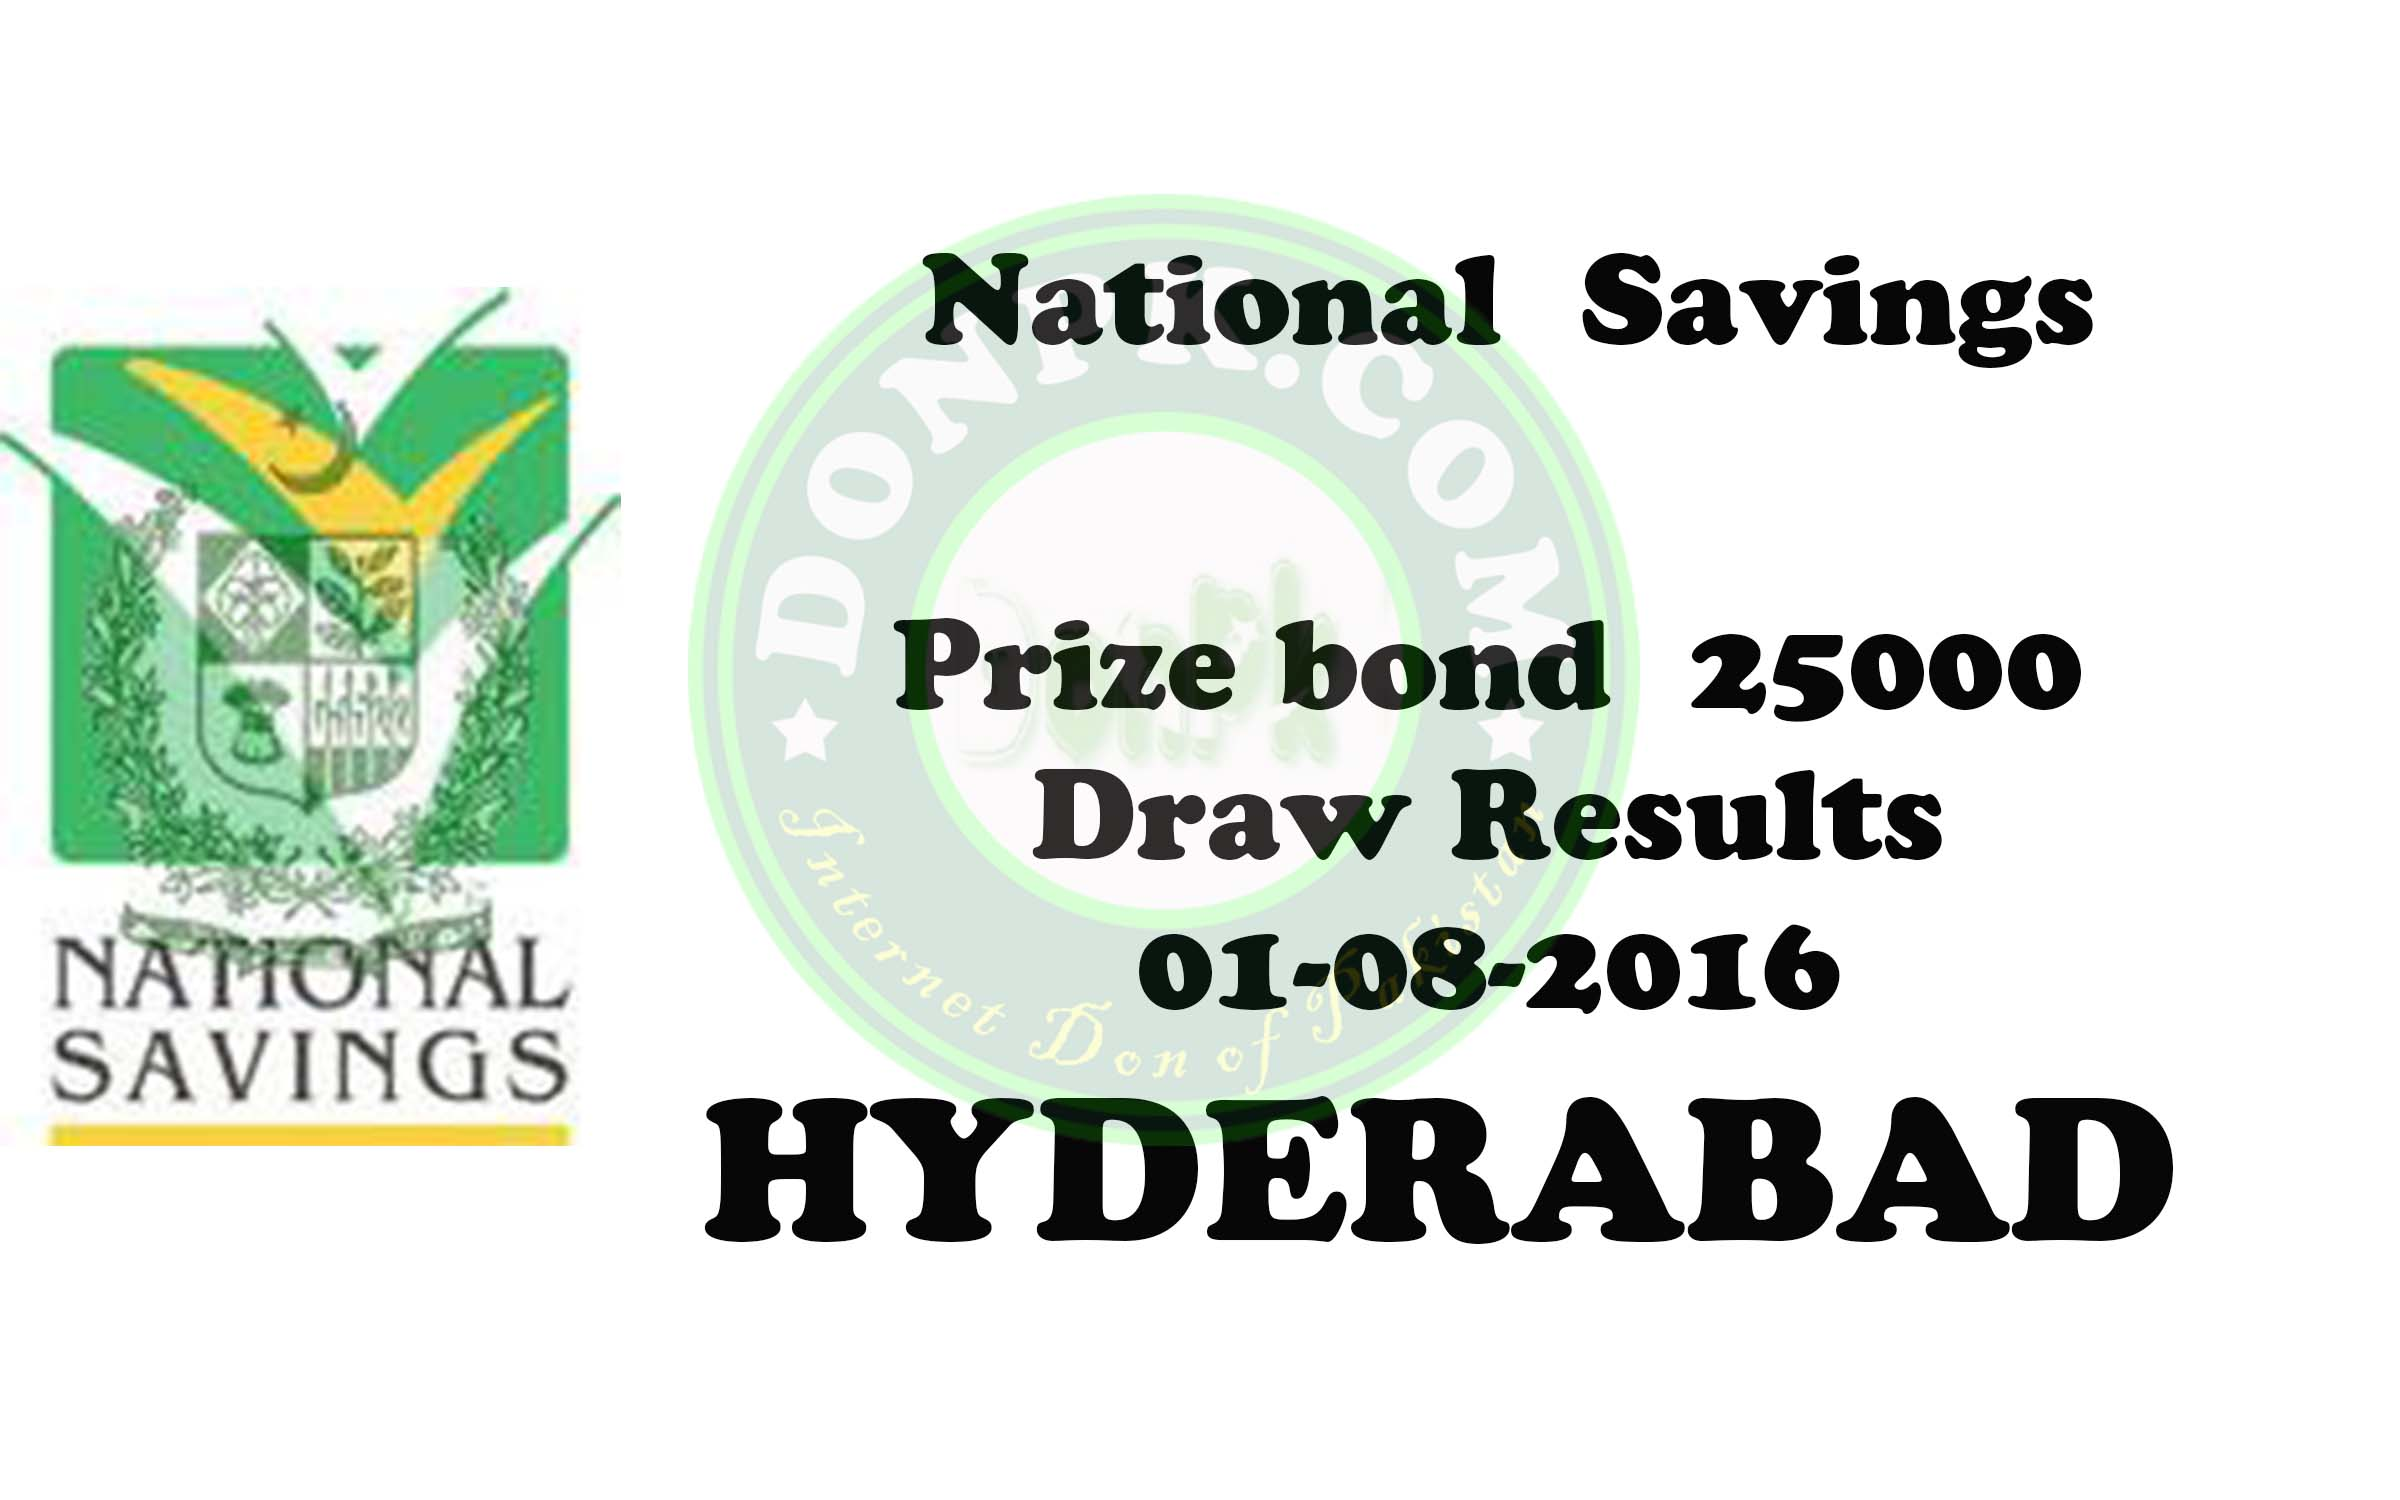 Prize bond draw Results of Rs.25000 Hyderabad 01-08-2016